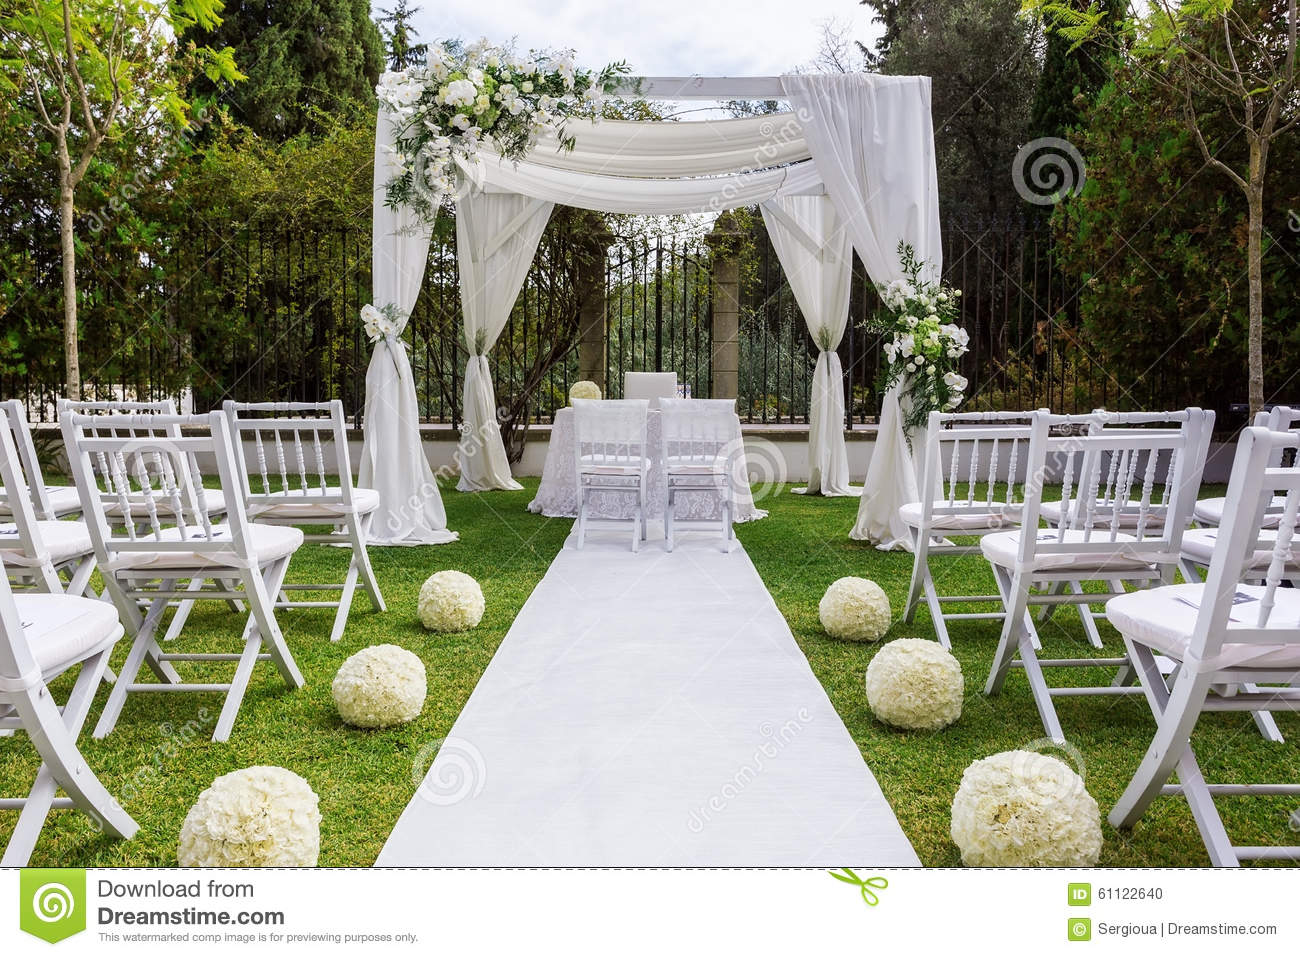 Wedding Path And Decorations For Newlyweds In Nature In Garden